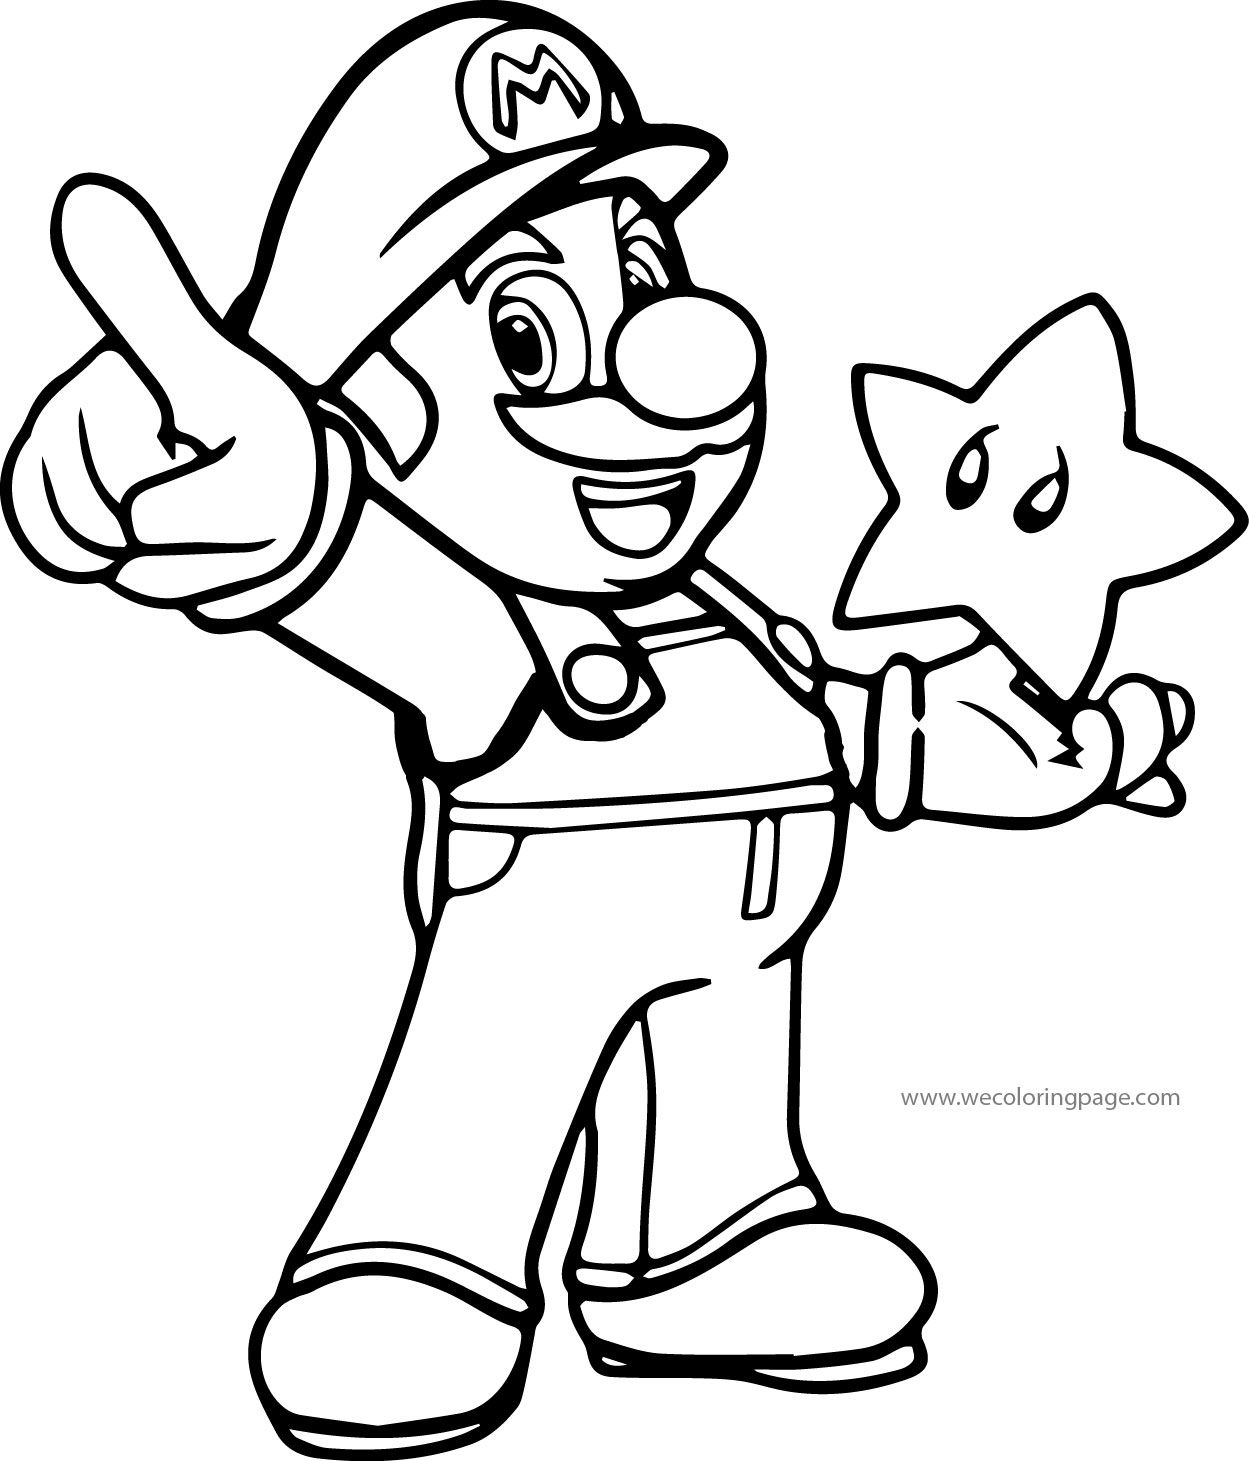 printable mario coloring pages Super Mario Coloring Page | wecoloringpage | Mario coloring pages  printable mario coloring pages